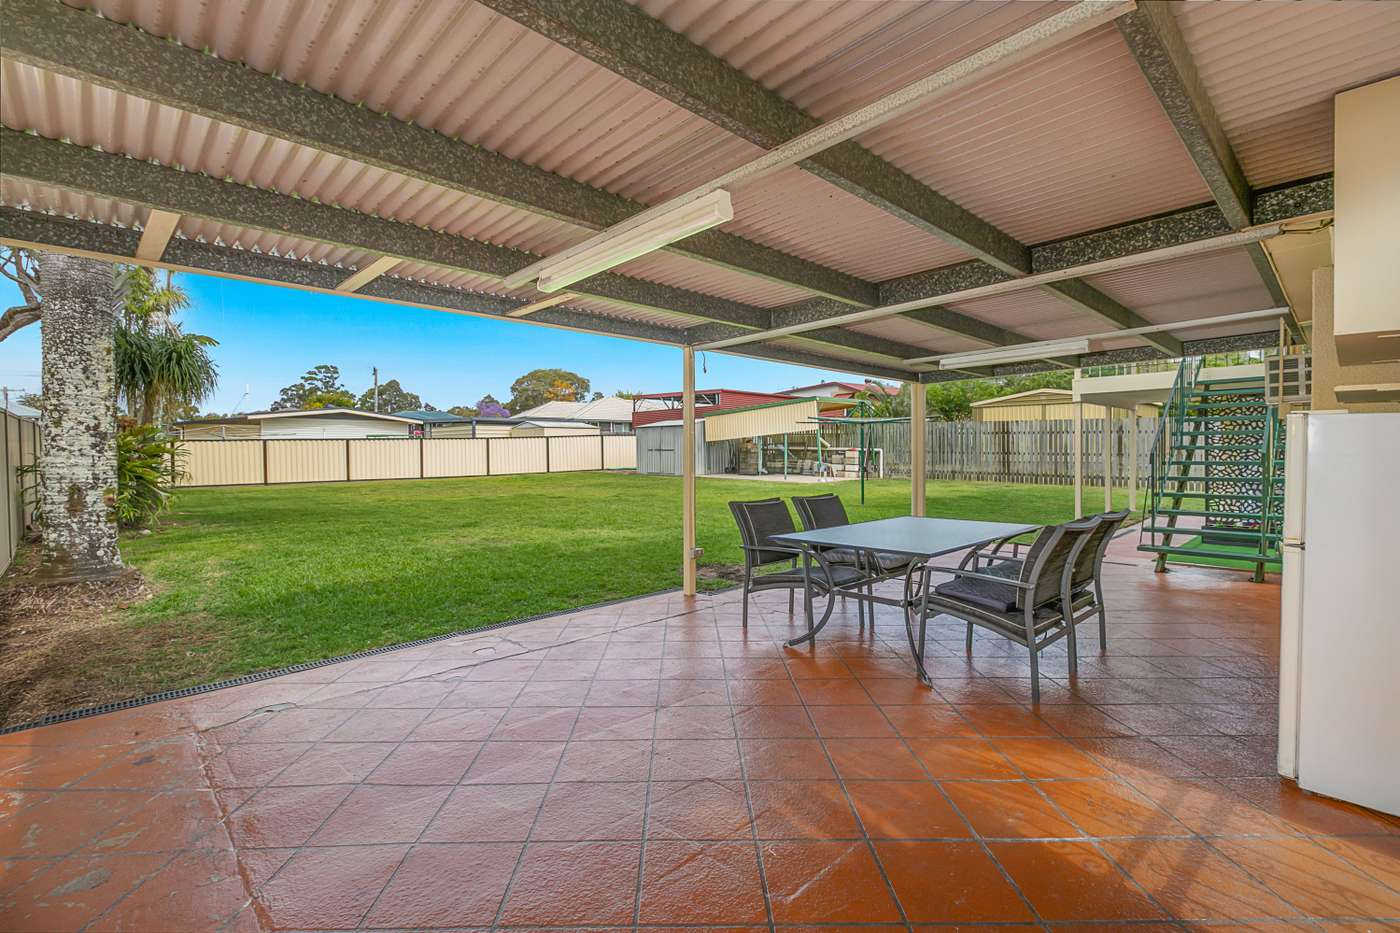 Main view of Homely house listing, 351 Old Cleveland Road East, Birkdale, QLD 4159